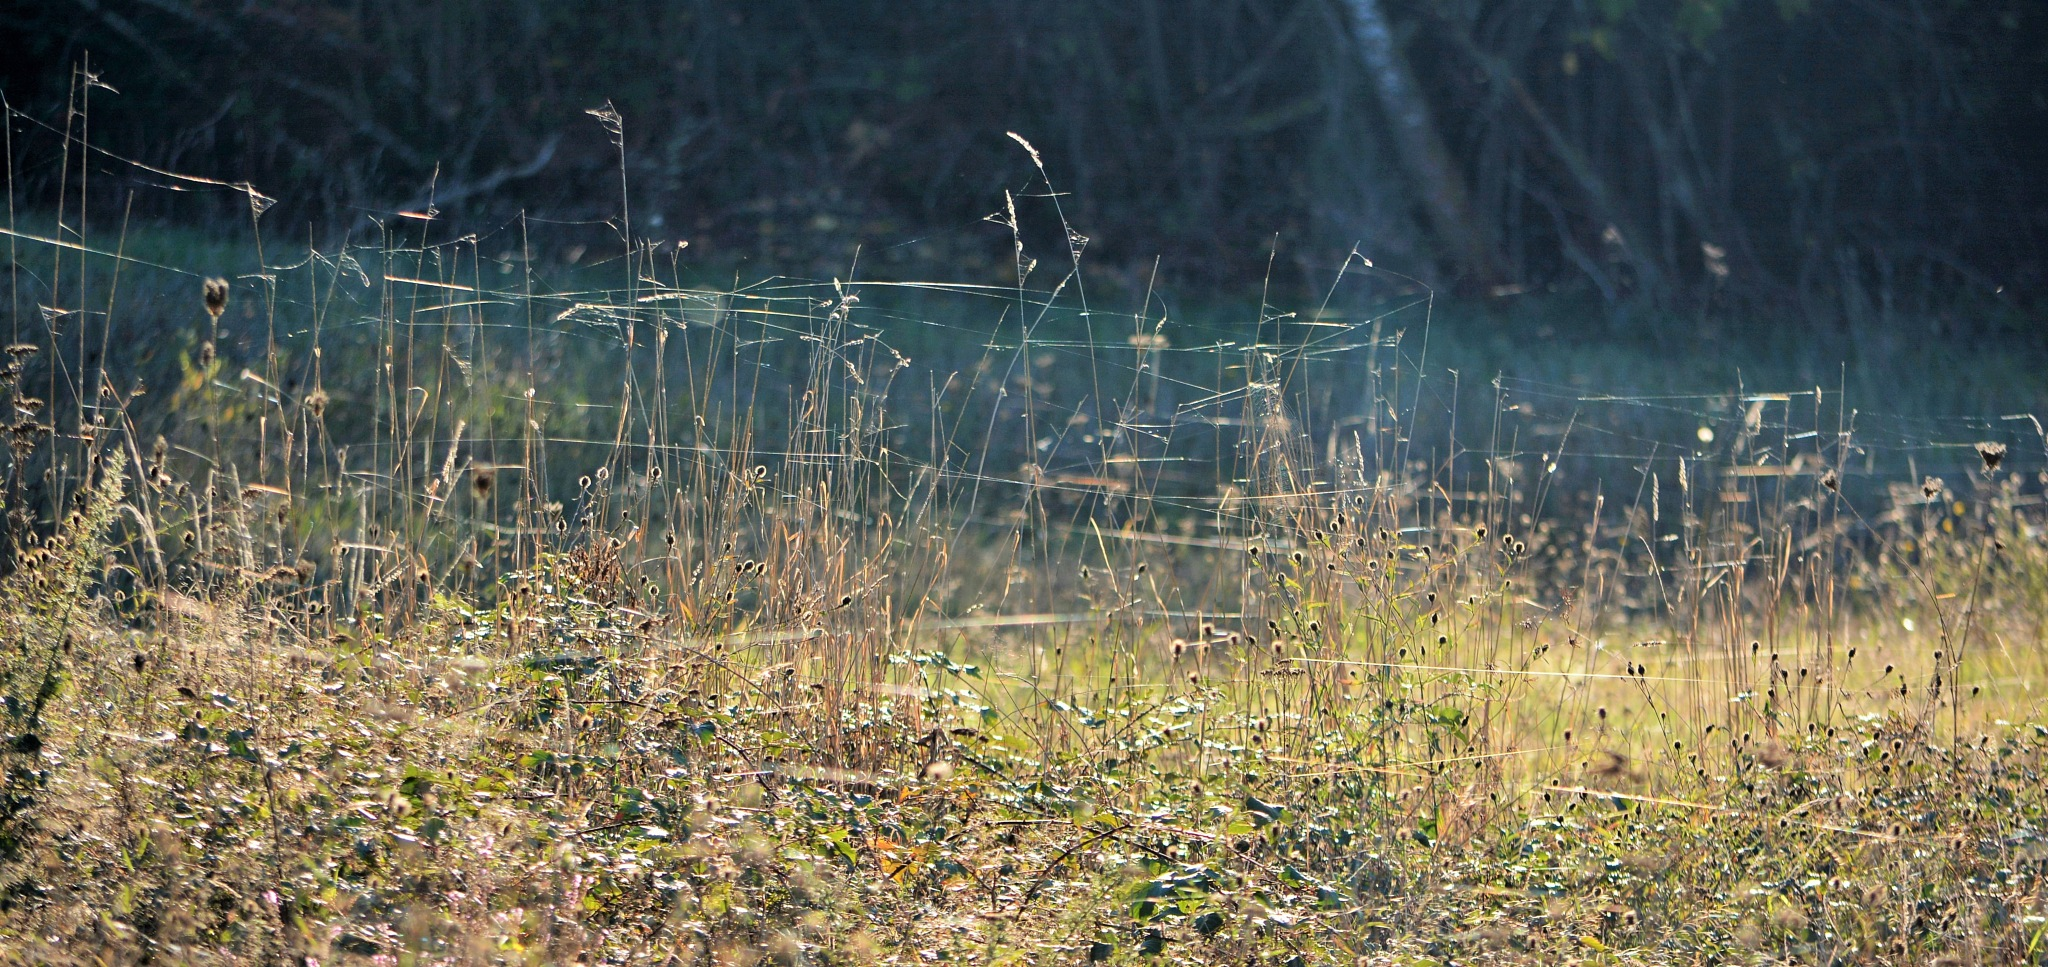 Spider's webs in the grass! by alison16